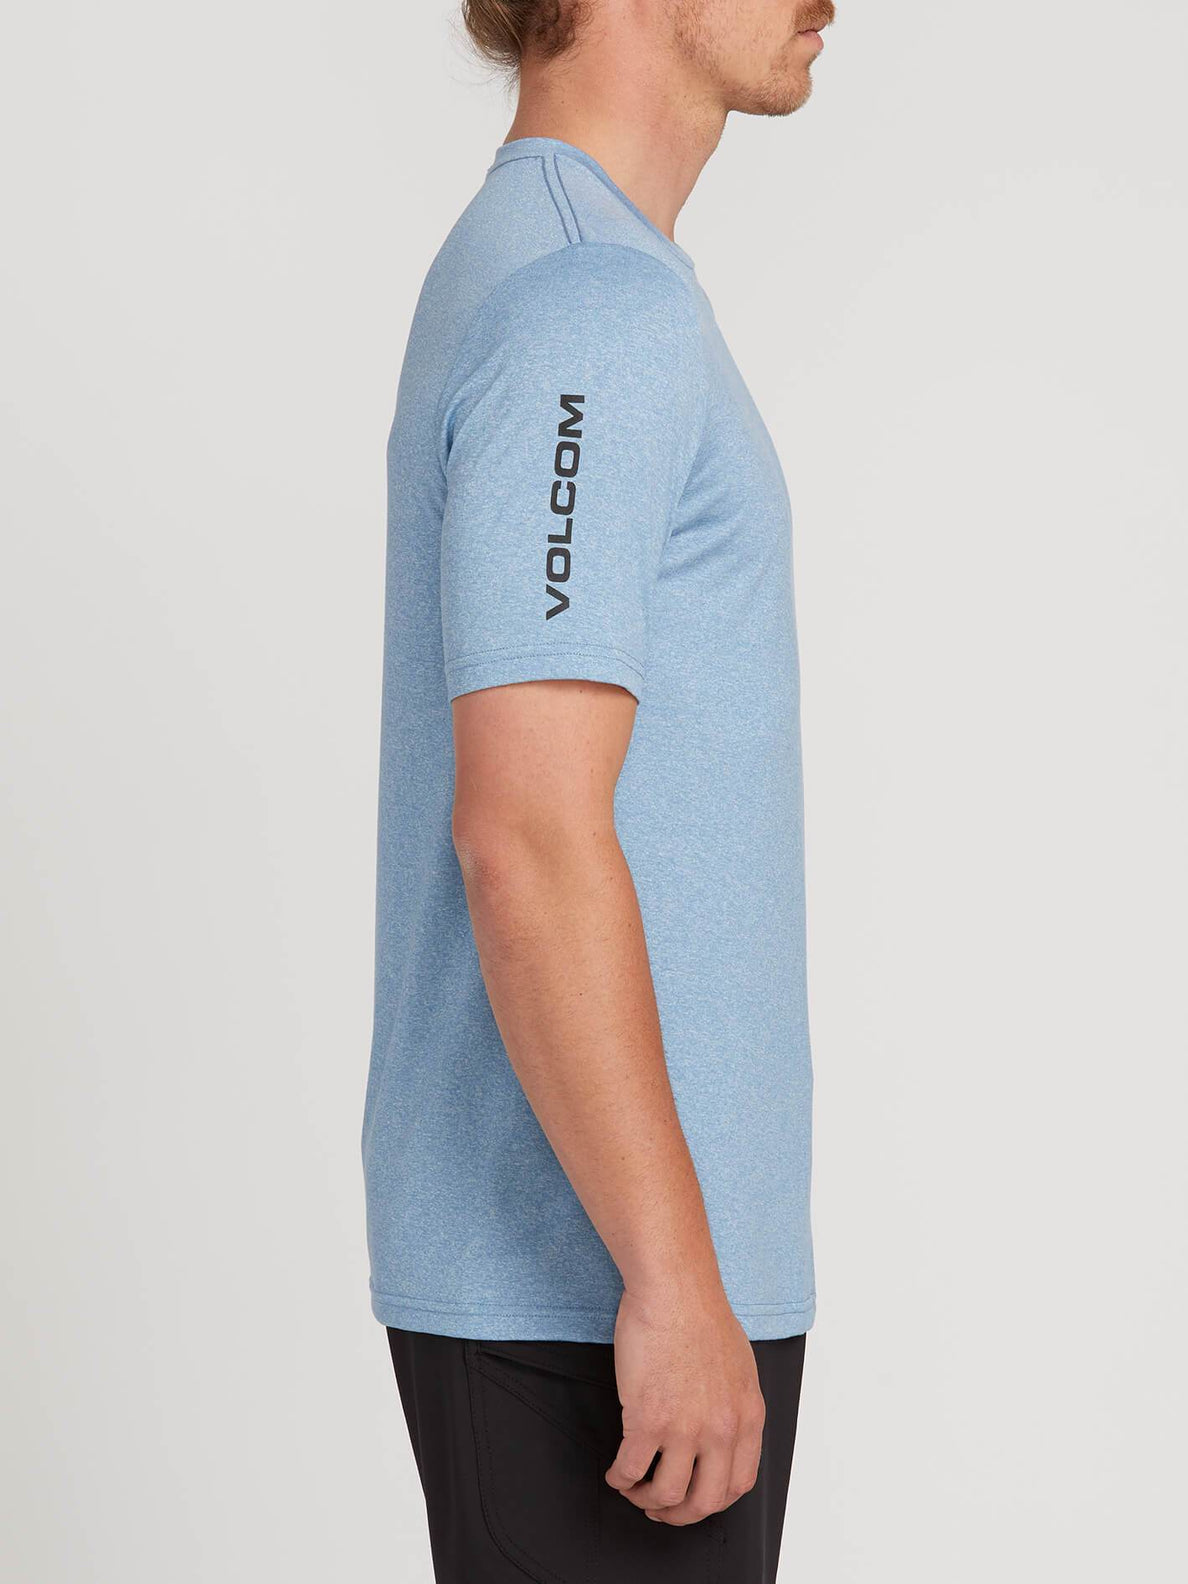 Lido Heather Short Sleeve Rashguard In Vintage Blue, Second Alternate View